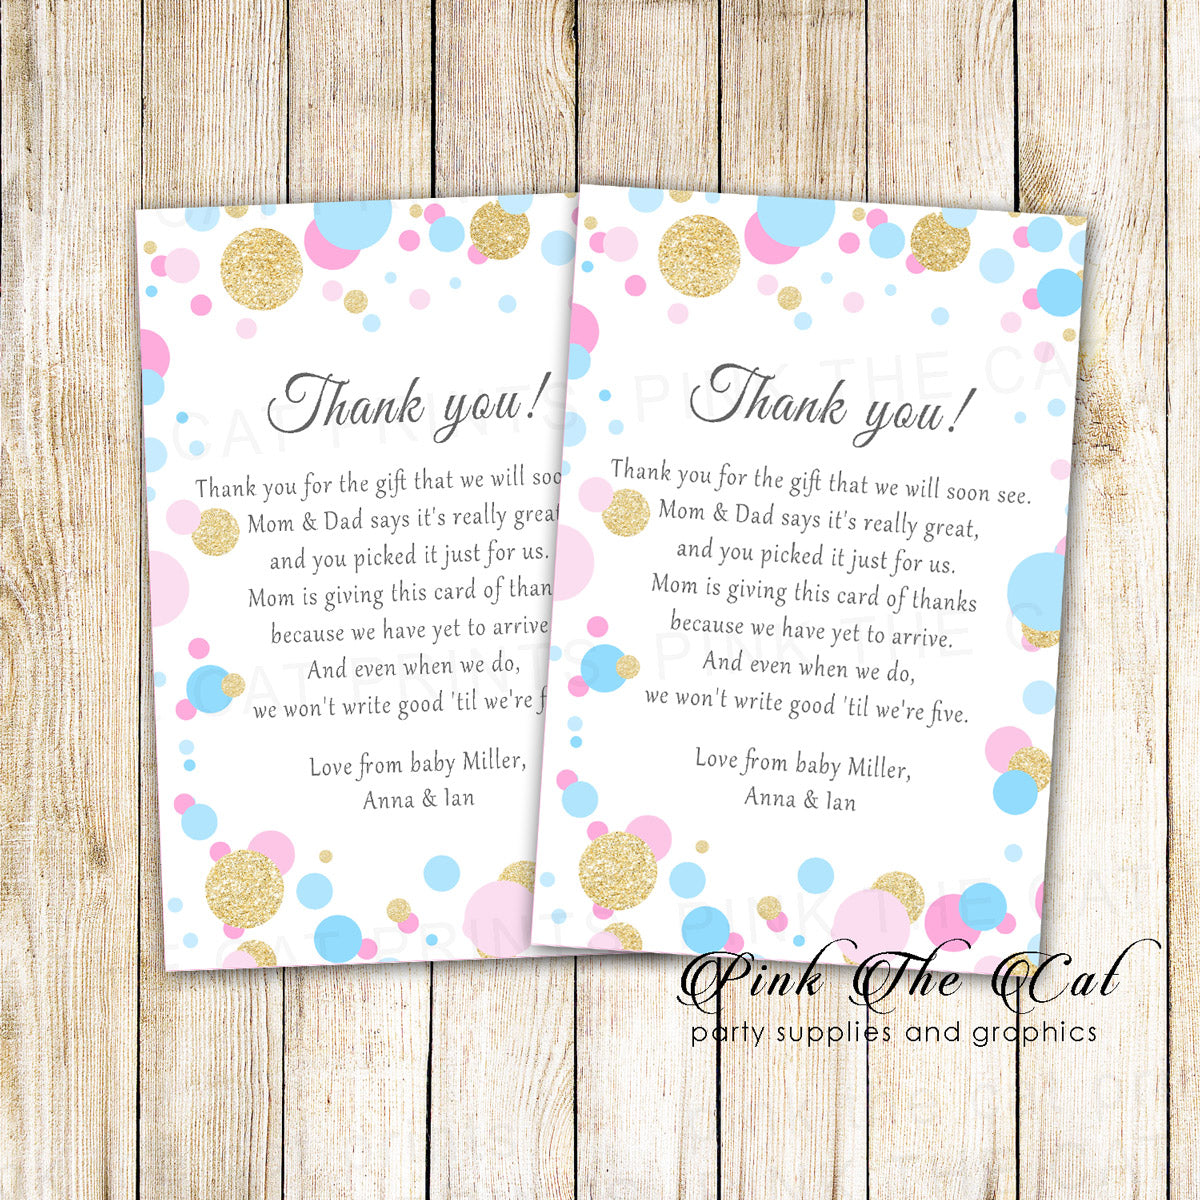 30 thank you cards confetti pink blue gold baby shower girl boy